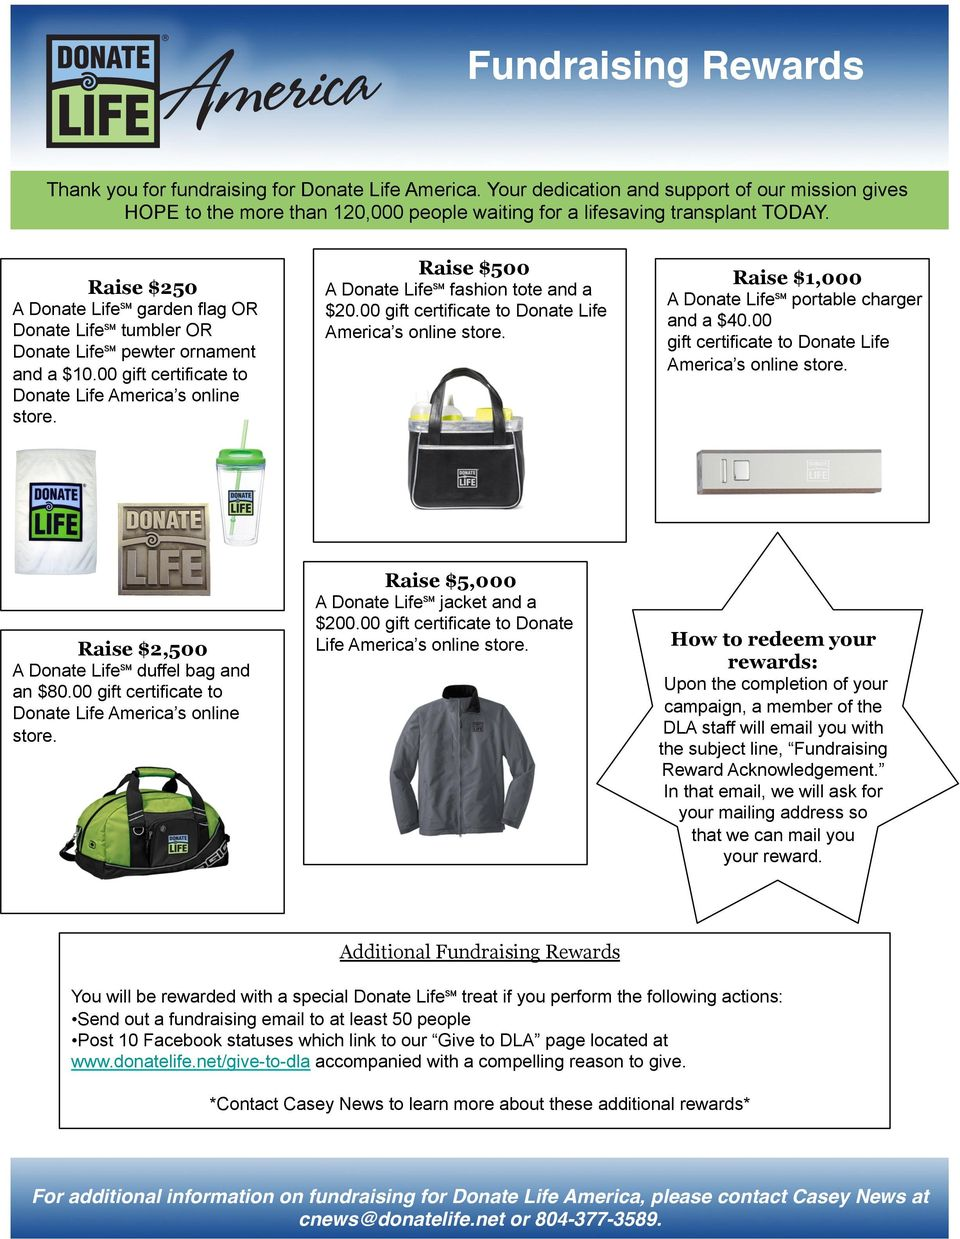 A Donate Life fashion tote and a $20.00 gift certificate to Donate Life America s online store. Raise $1,000 A Donate Life portable charger and a $40.